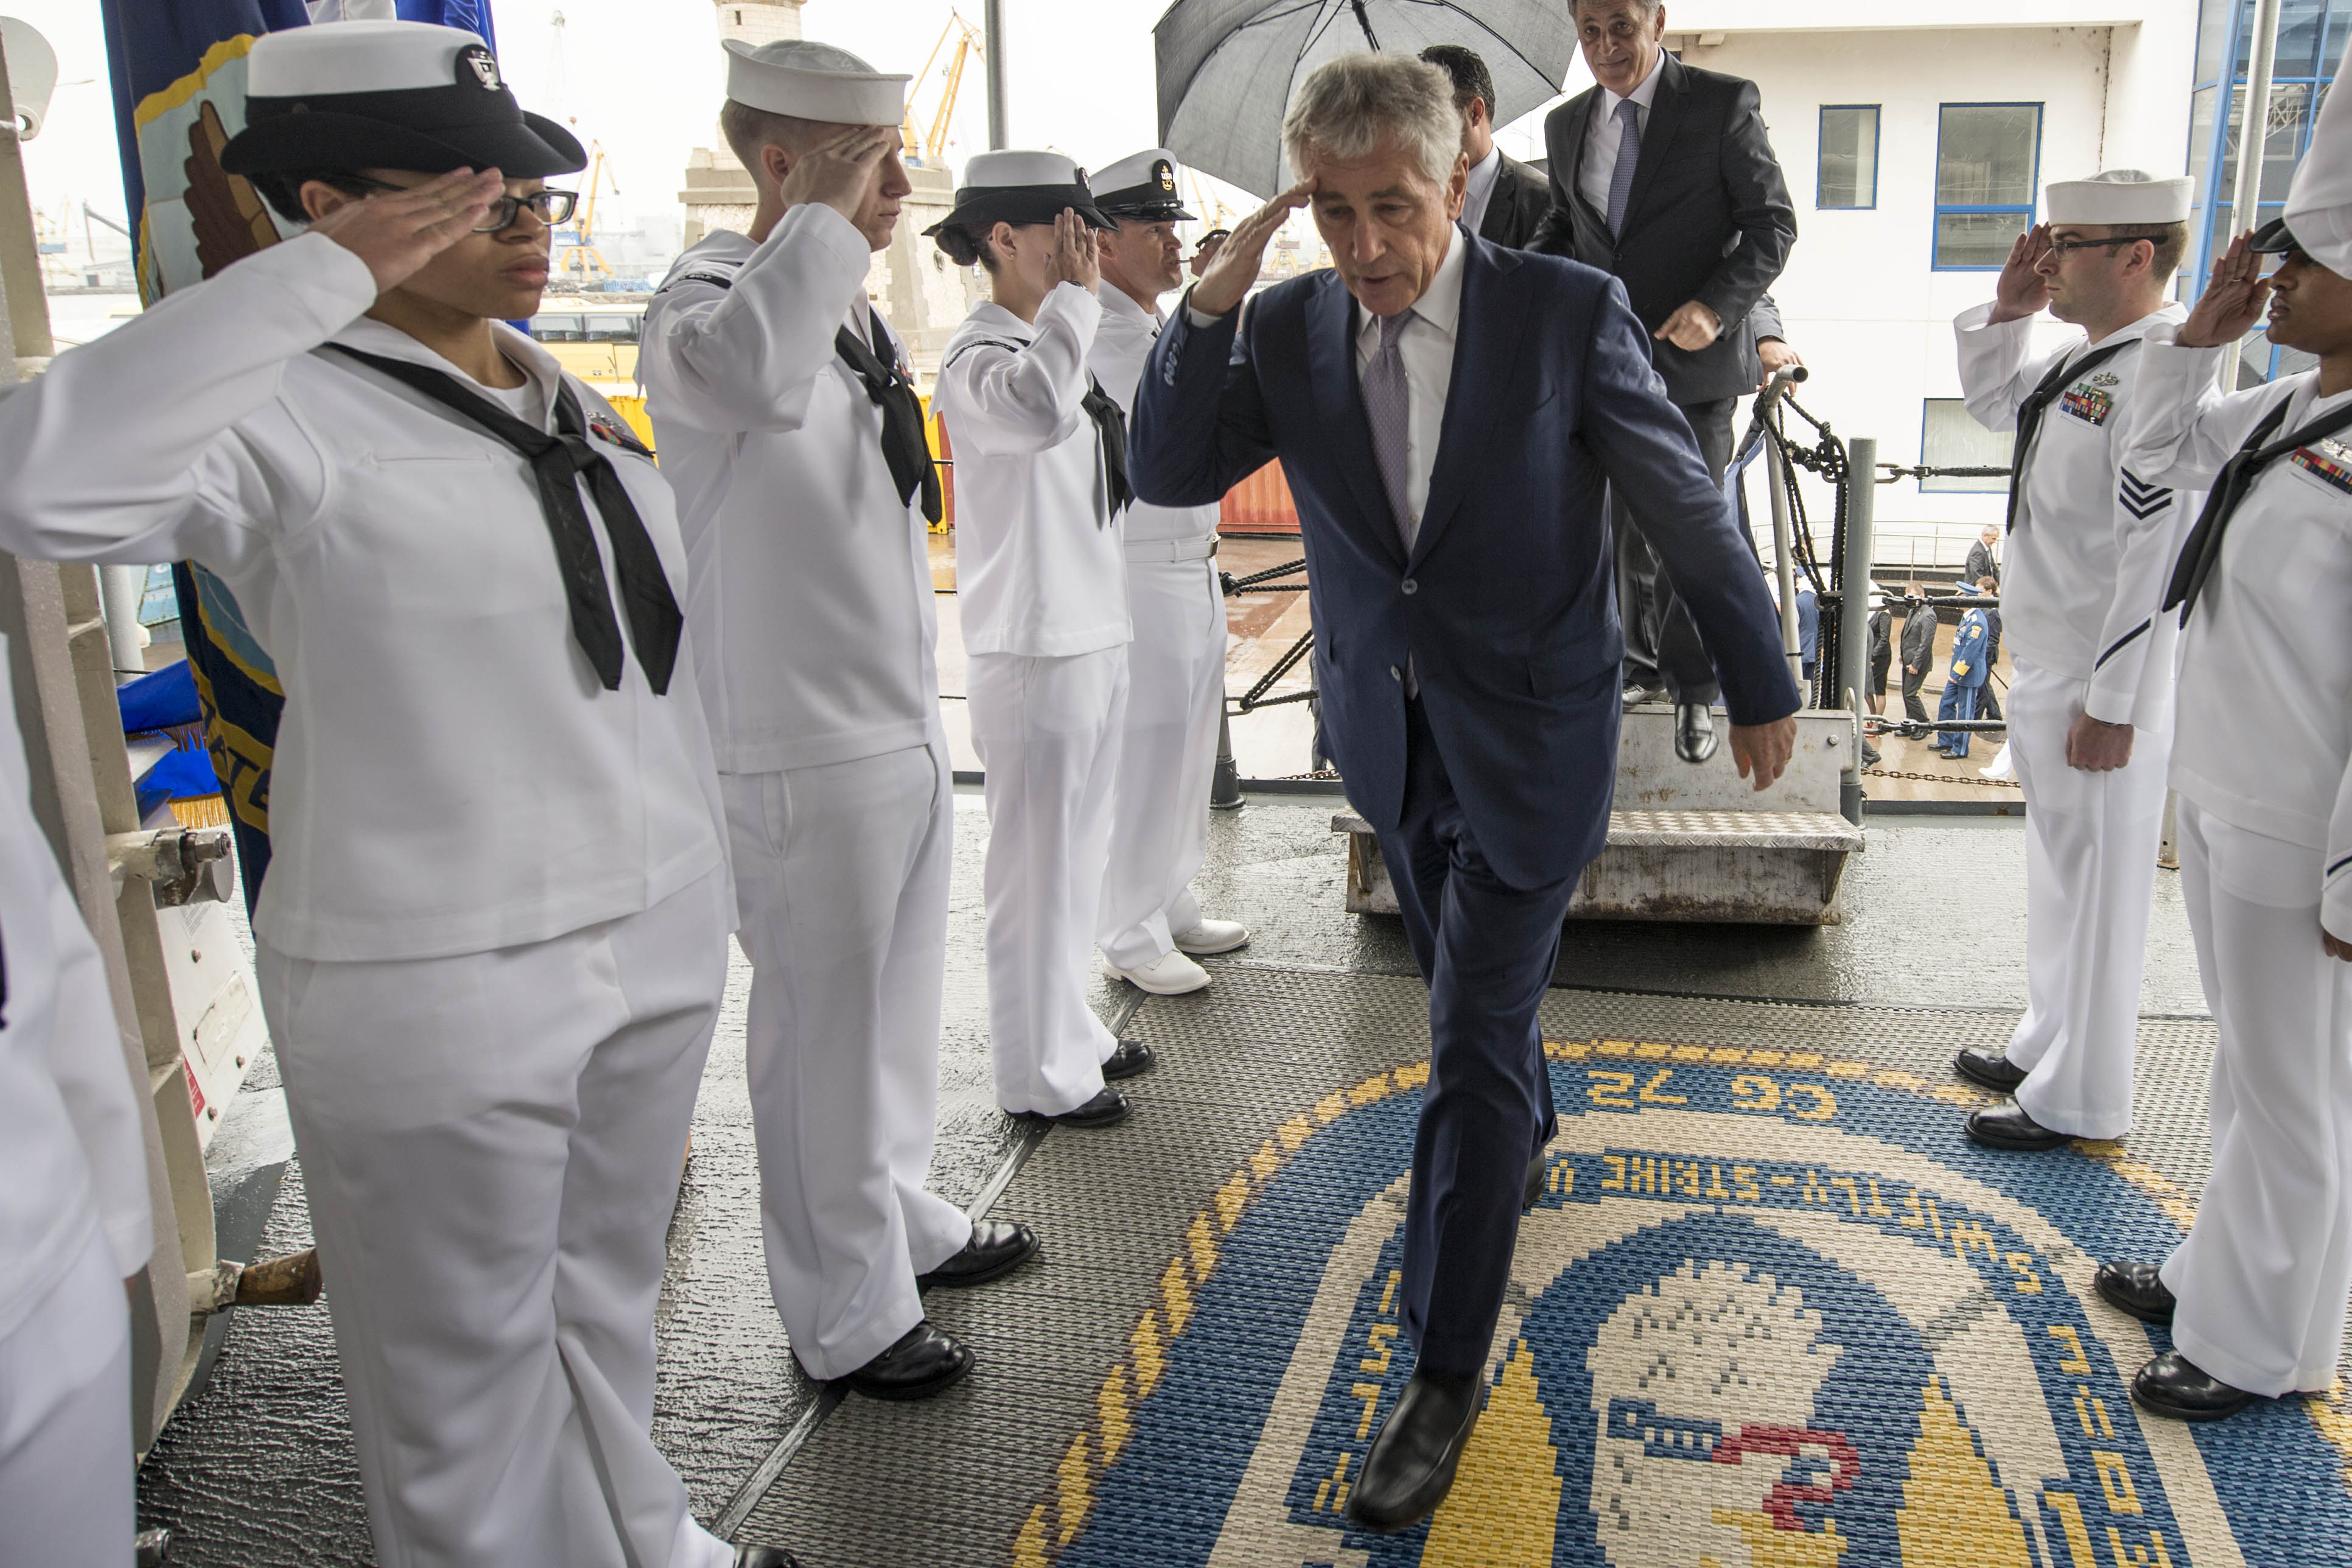 Secretary of Defense (SECDEF) Chuck Hagel is saluted by side boys as he visits the Ticonderoga-class guided-missile cruiser USS Vella Gulf (CG-72) on June 5, 2014. US Navy Photo